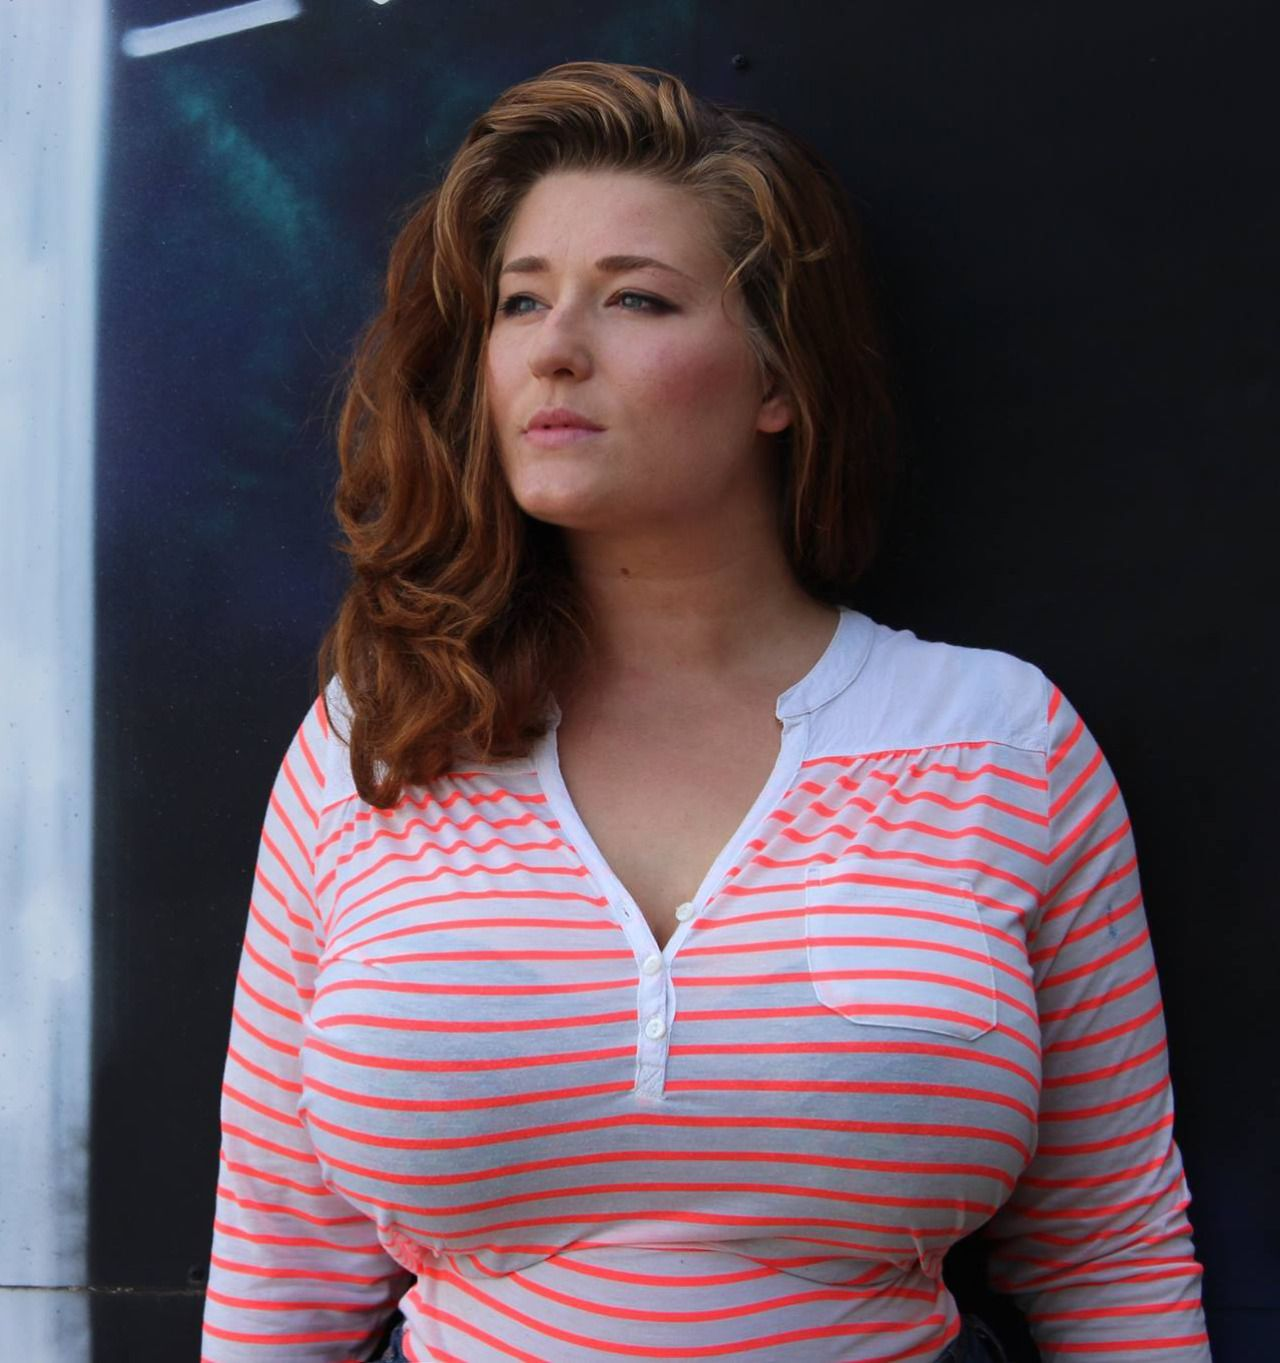 the beauty that is big women big boobs and mature   wow